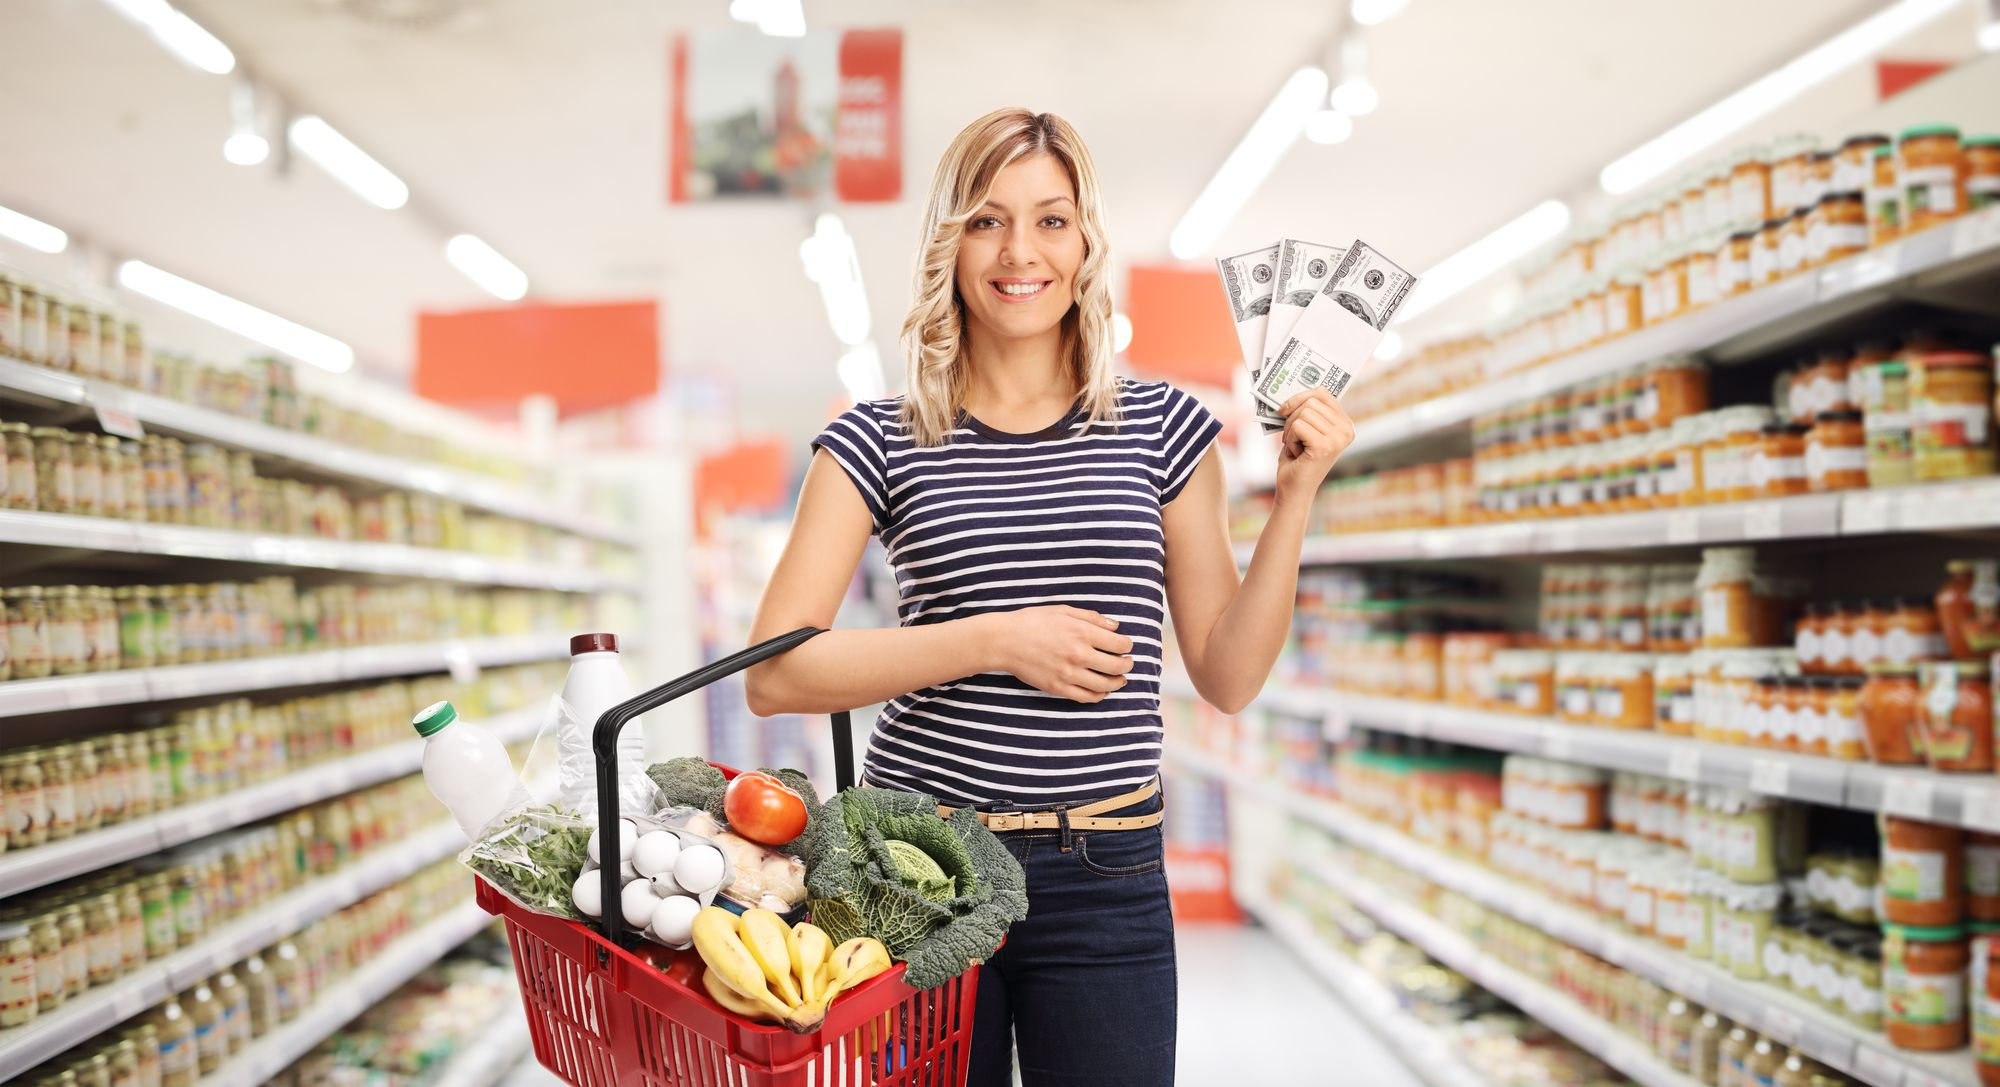 10 Tips for Saving Money on Groceries